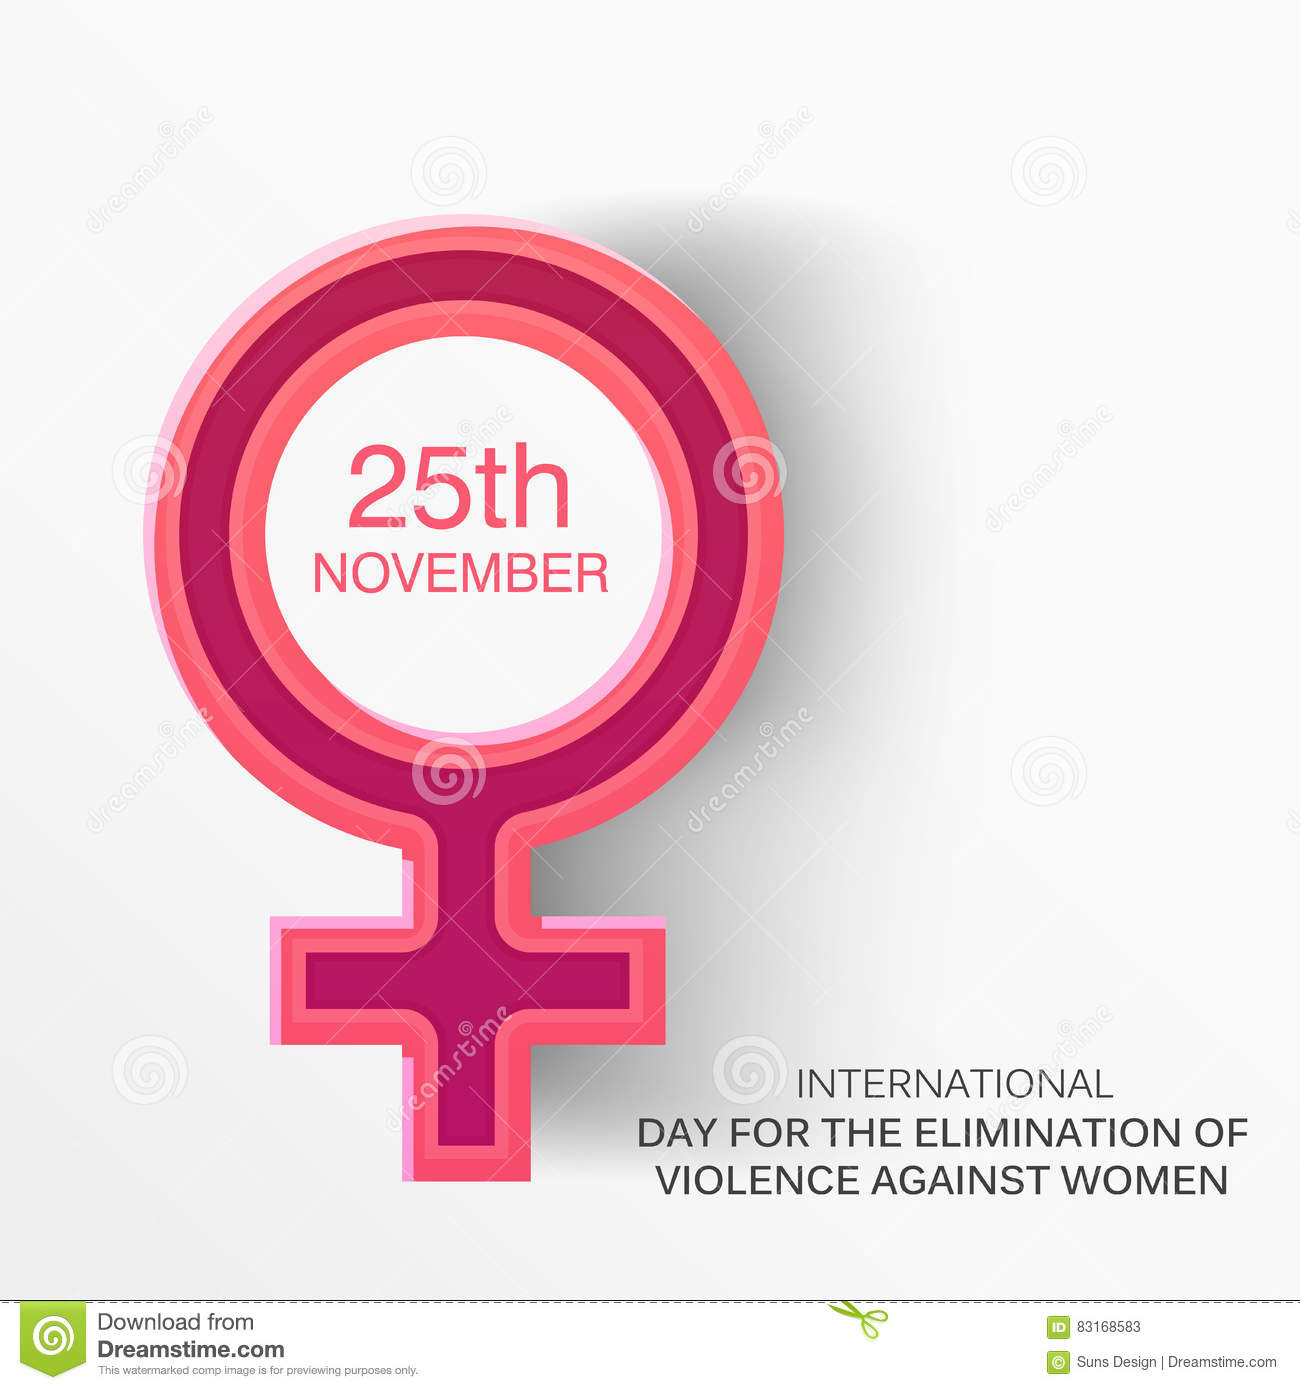 International day for the elimination of violence against women international day for the elimination of violence against women care stop buycottarizona Choice Image